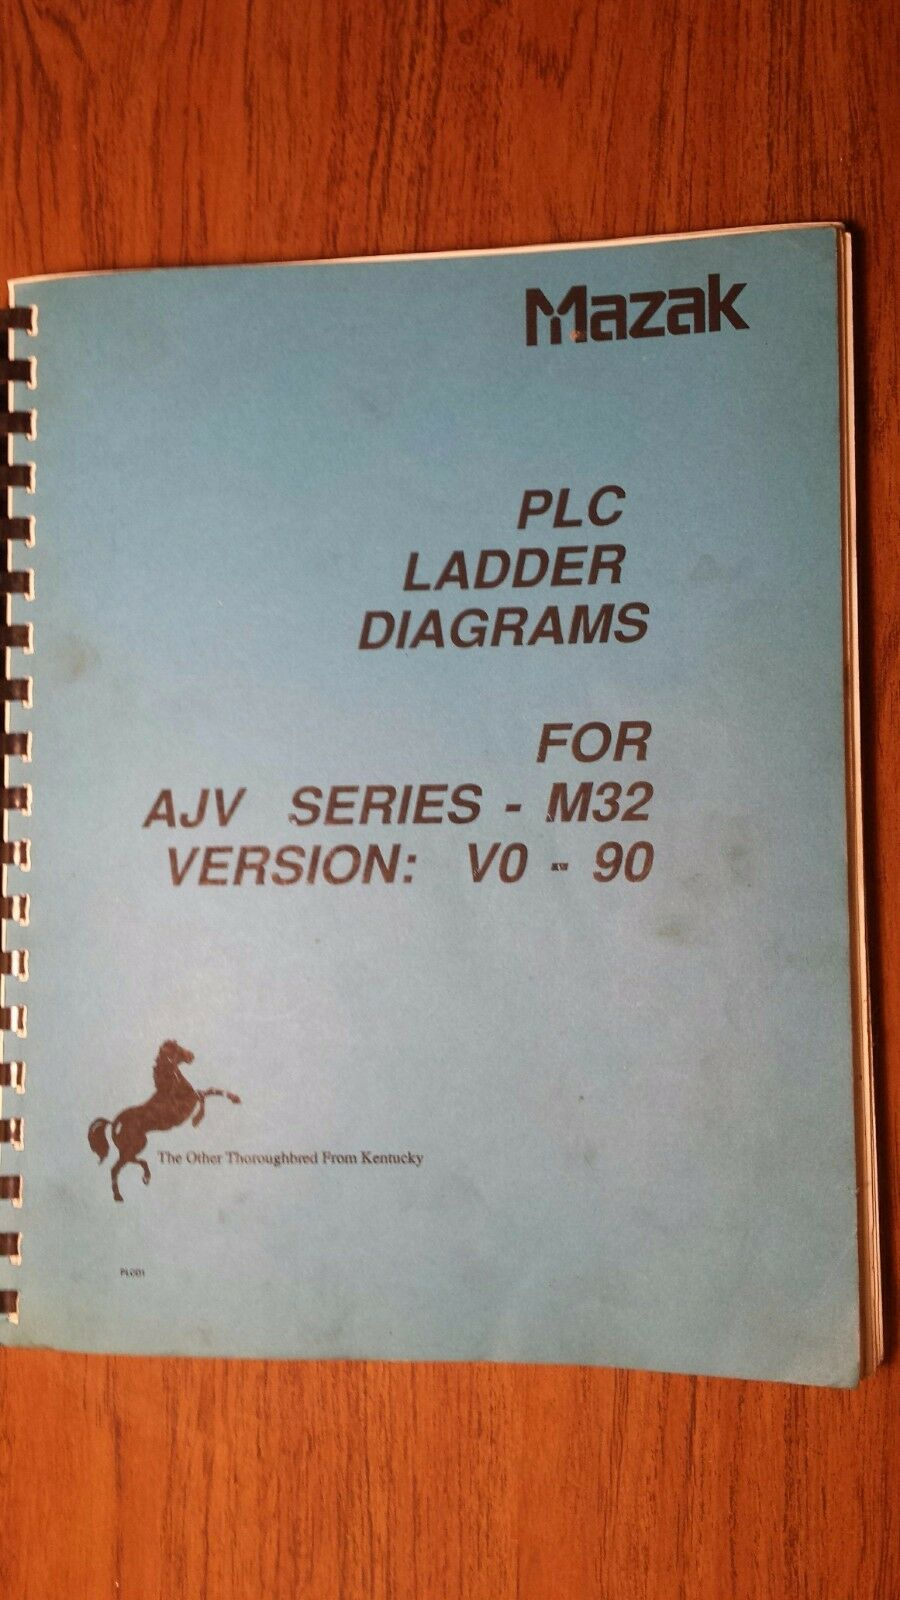 Mazak Ajv Series M32 Plc Ladder Diagrams Version Vo 90 4000 1 Of 1only Available